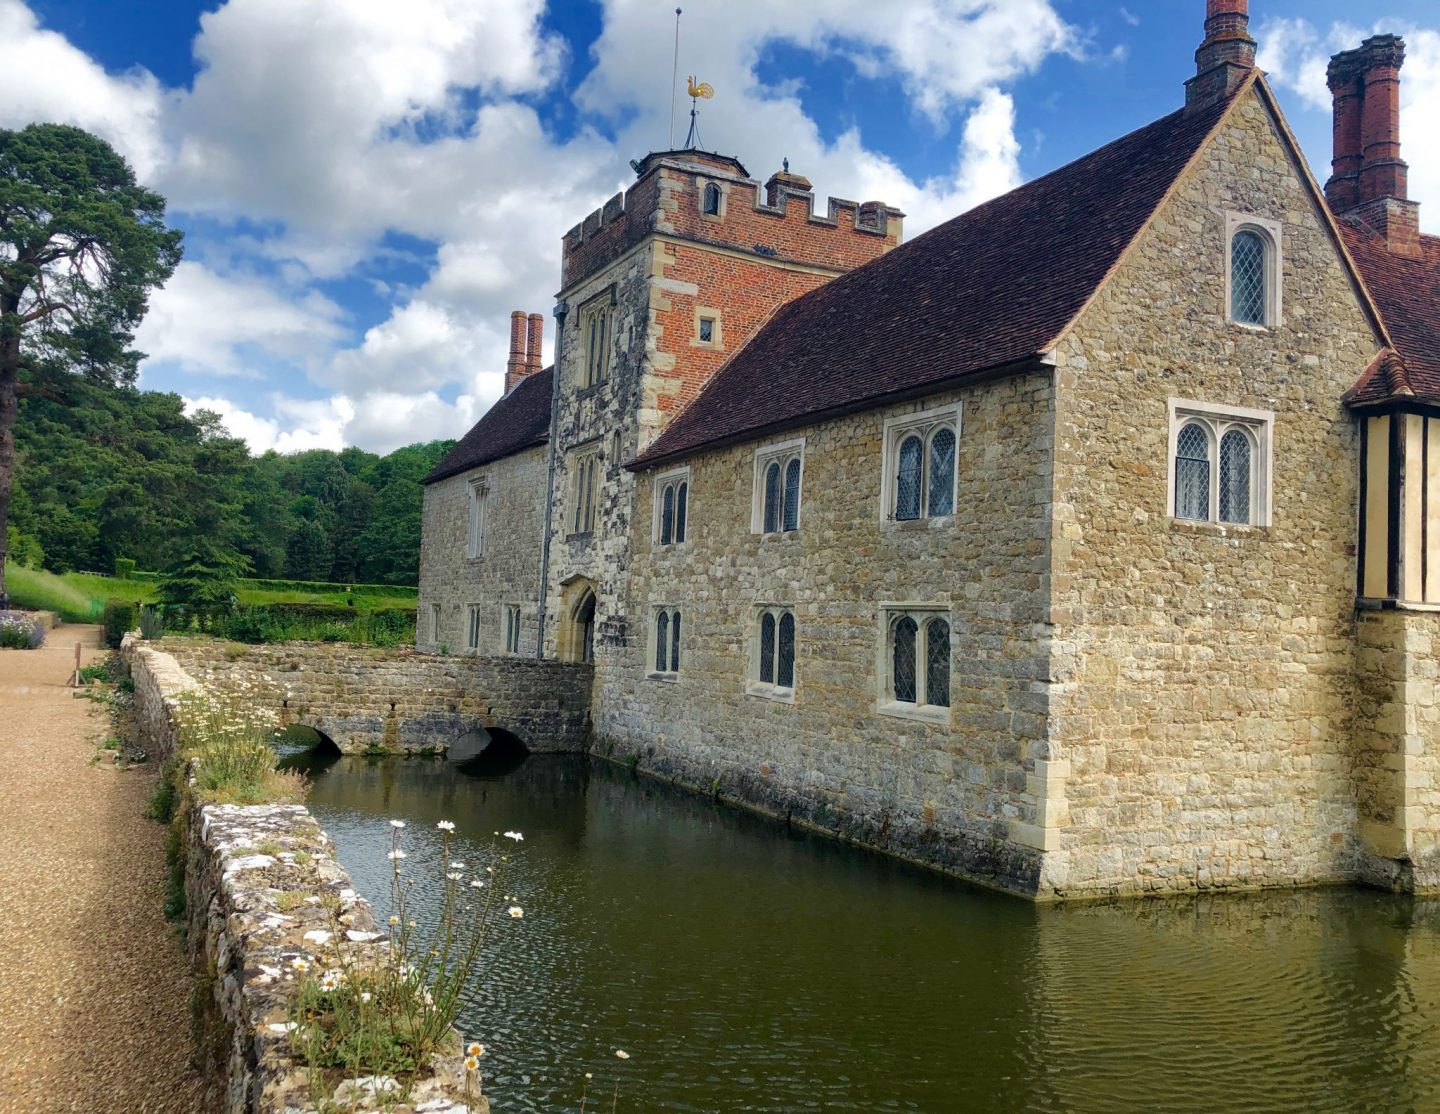 a day in kent with the National trust